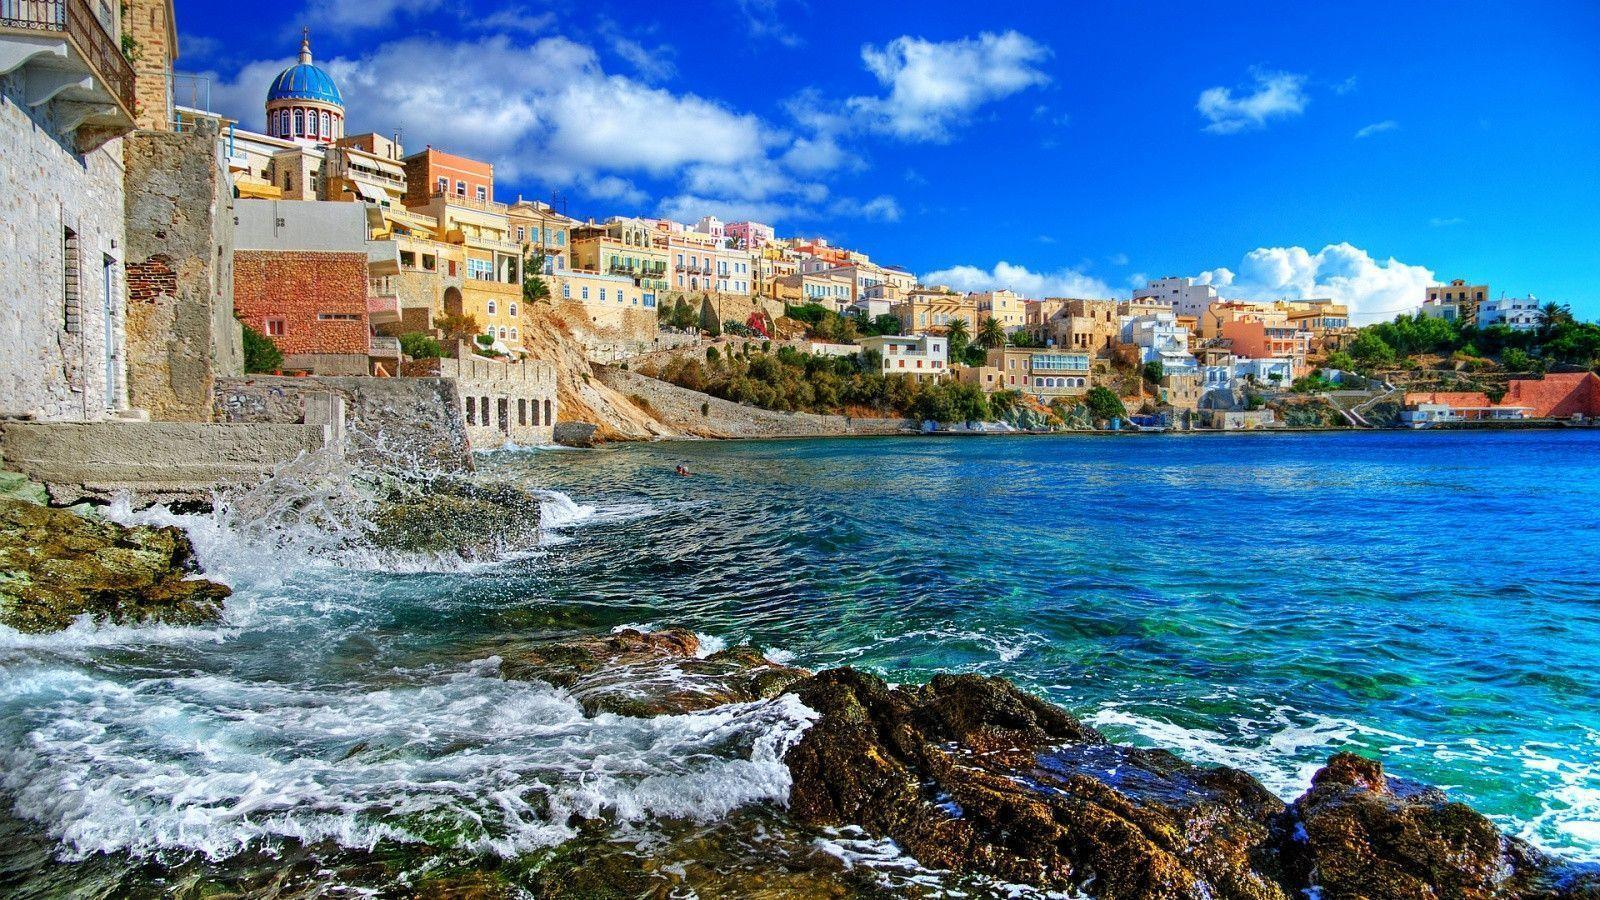 1600x900 Greece Syros Island Wallpaper